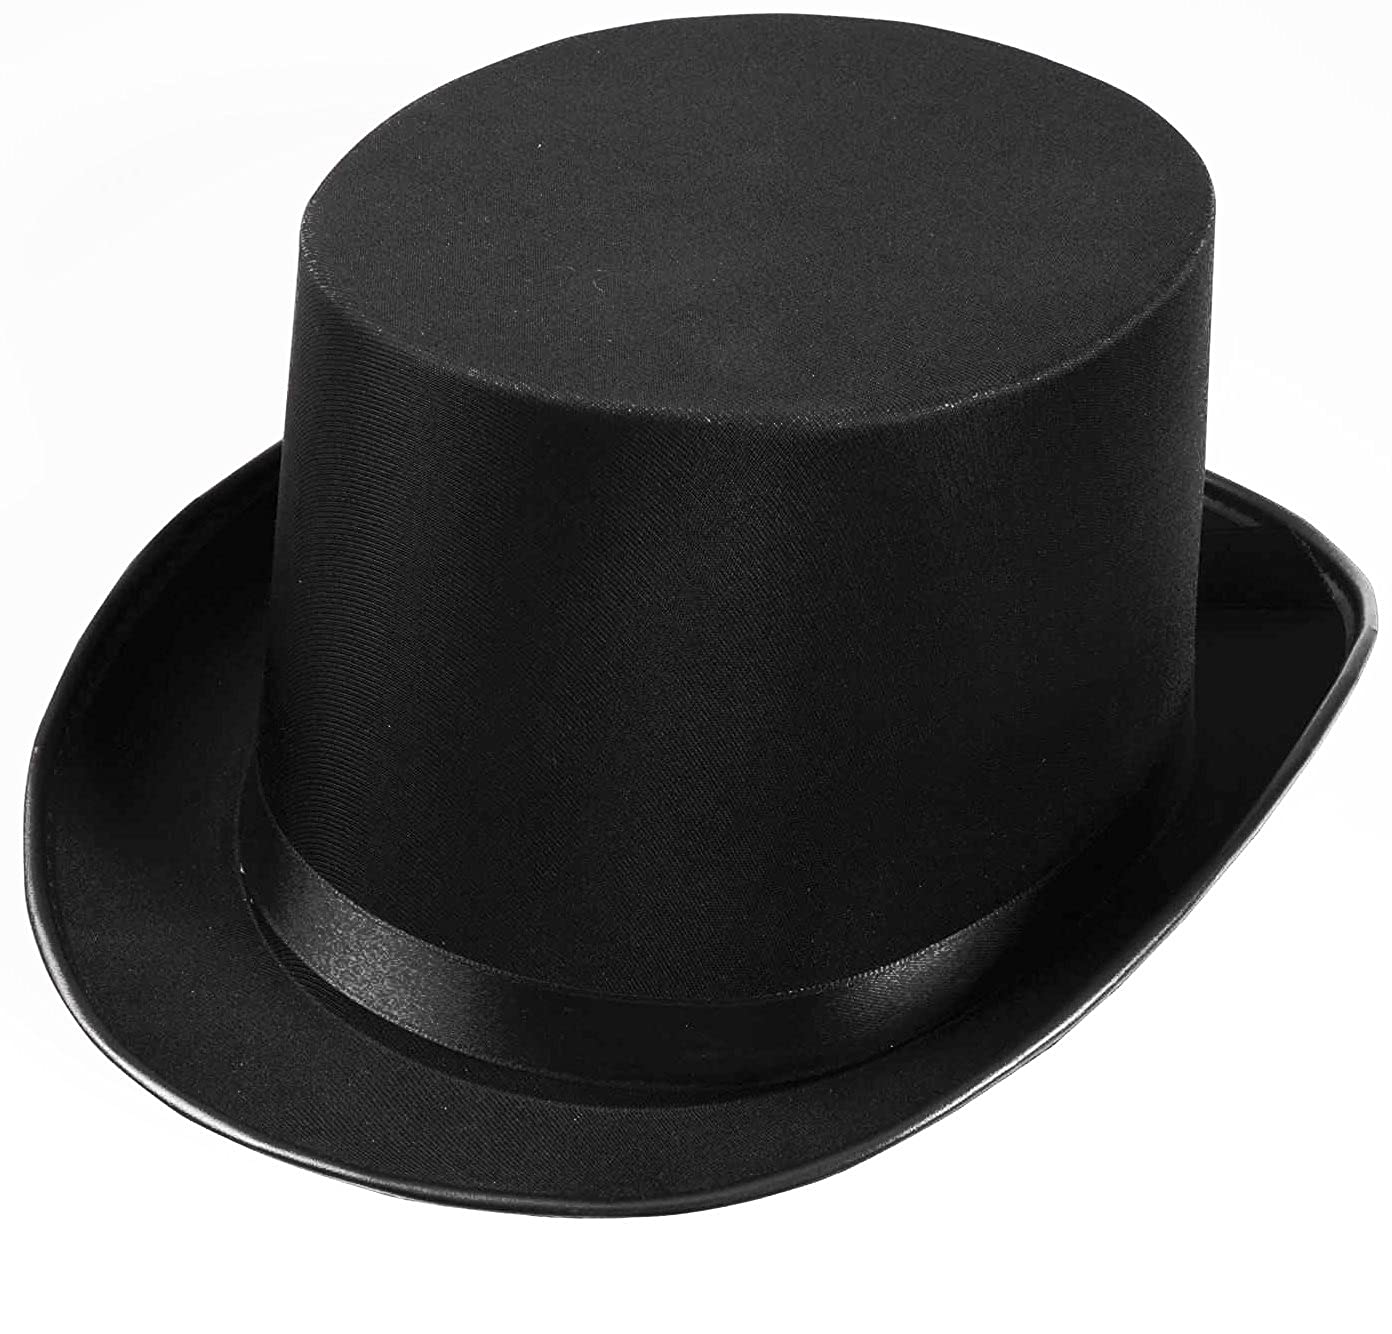 Forum Novelties Men's Deluxe Adult Satin Top Hat Costume Accessory Black One Size Forum Novelties Costumes 63835